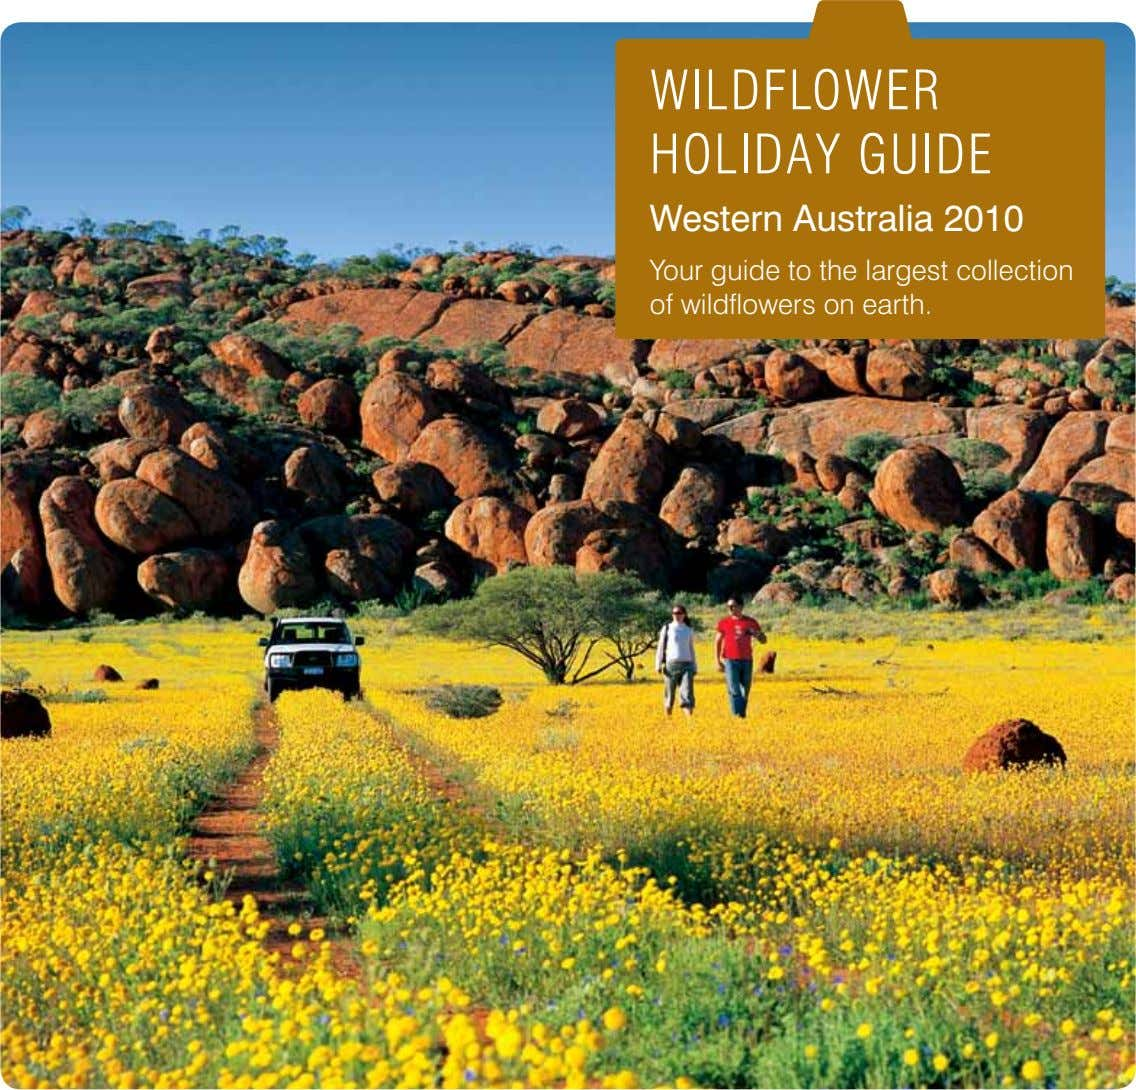 WildfloWer holiday guide Western Australia 2010 Your guide to the largest collection of wildflowers on